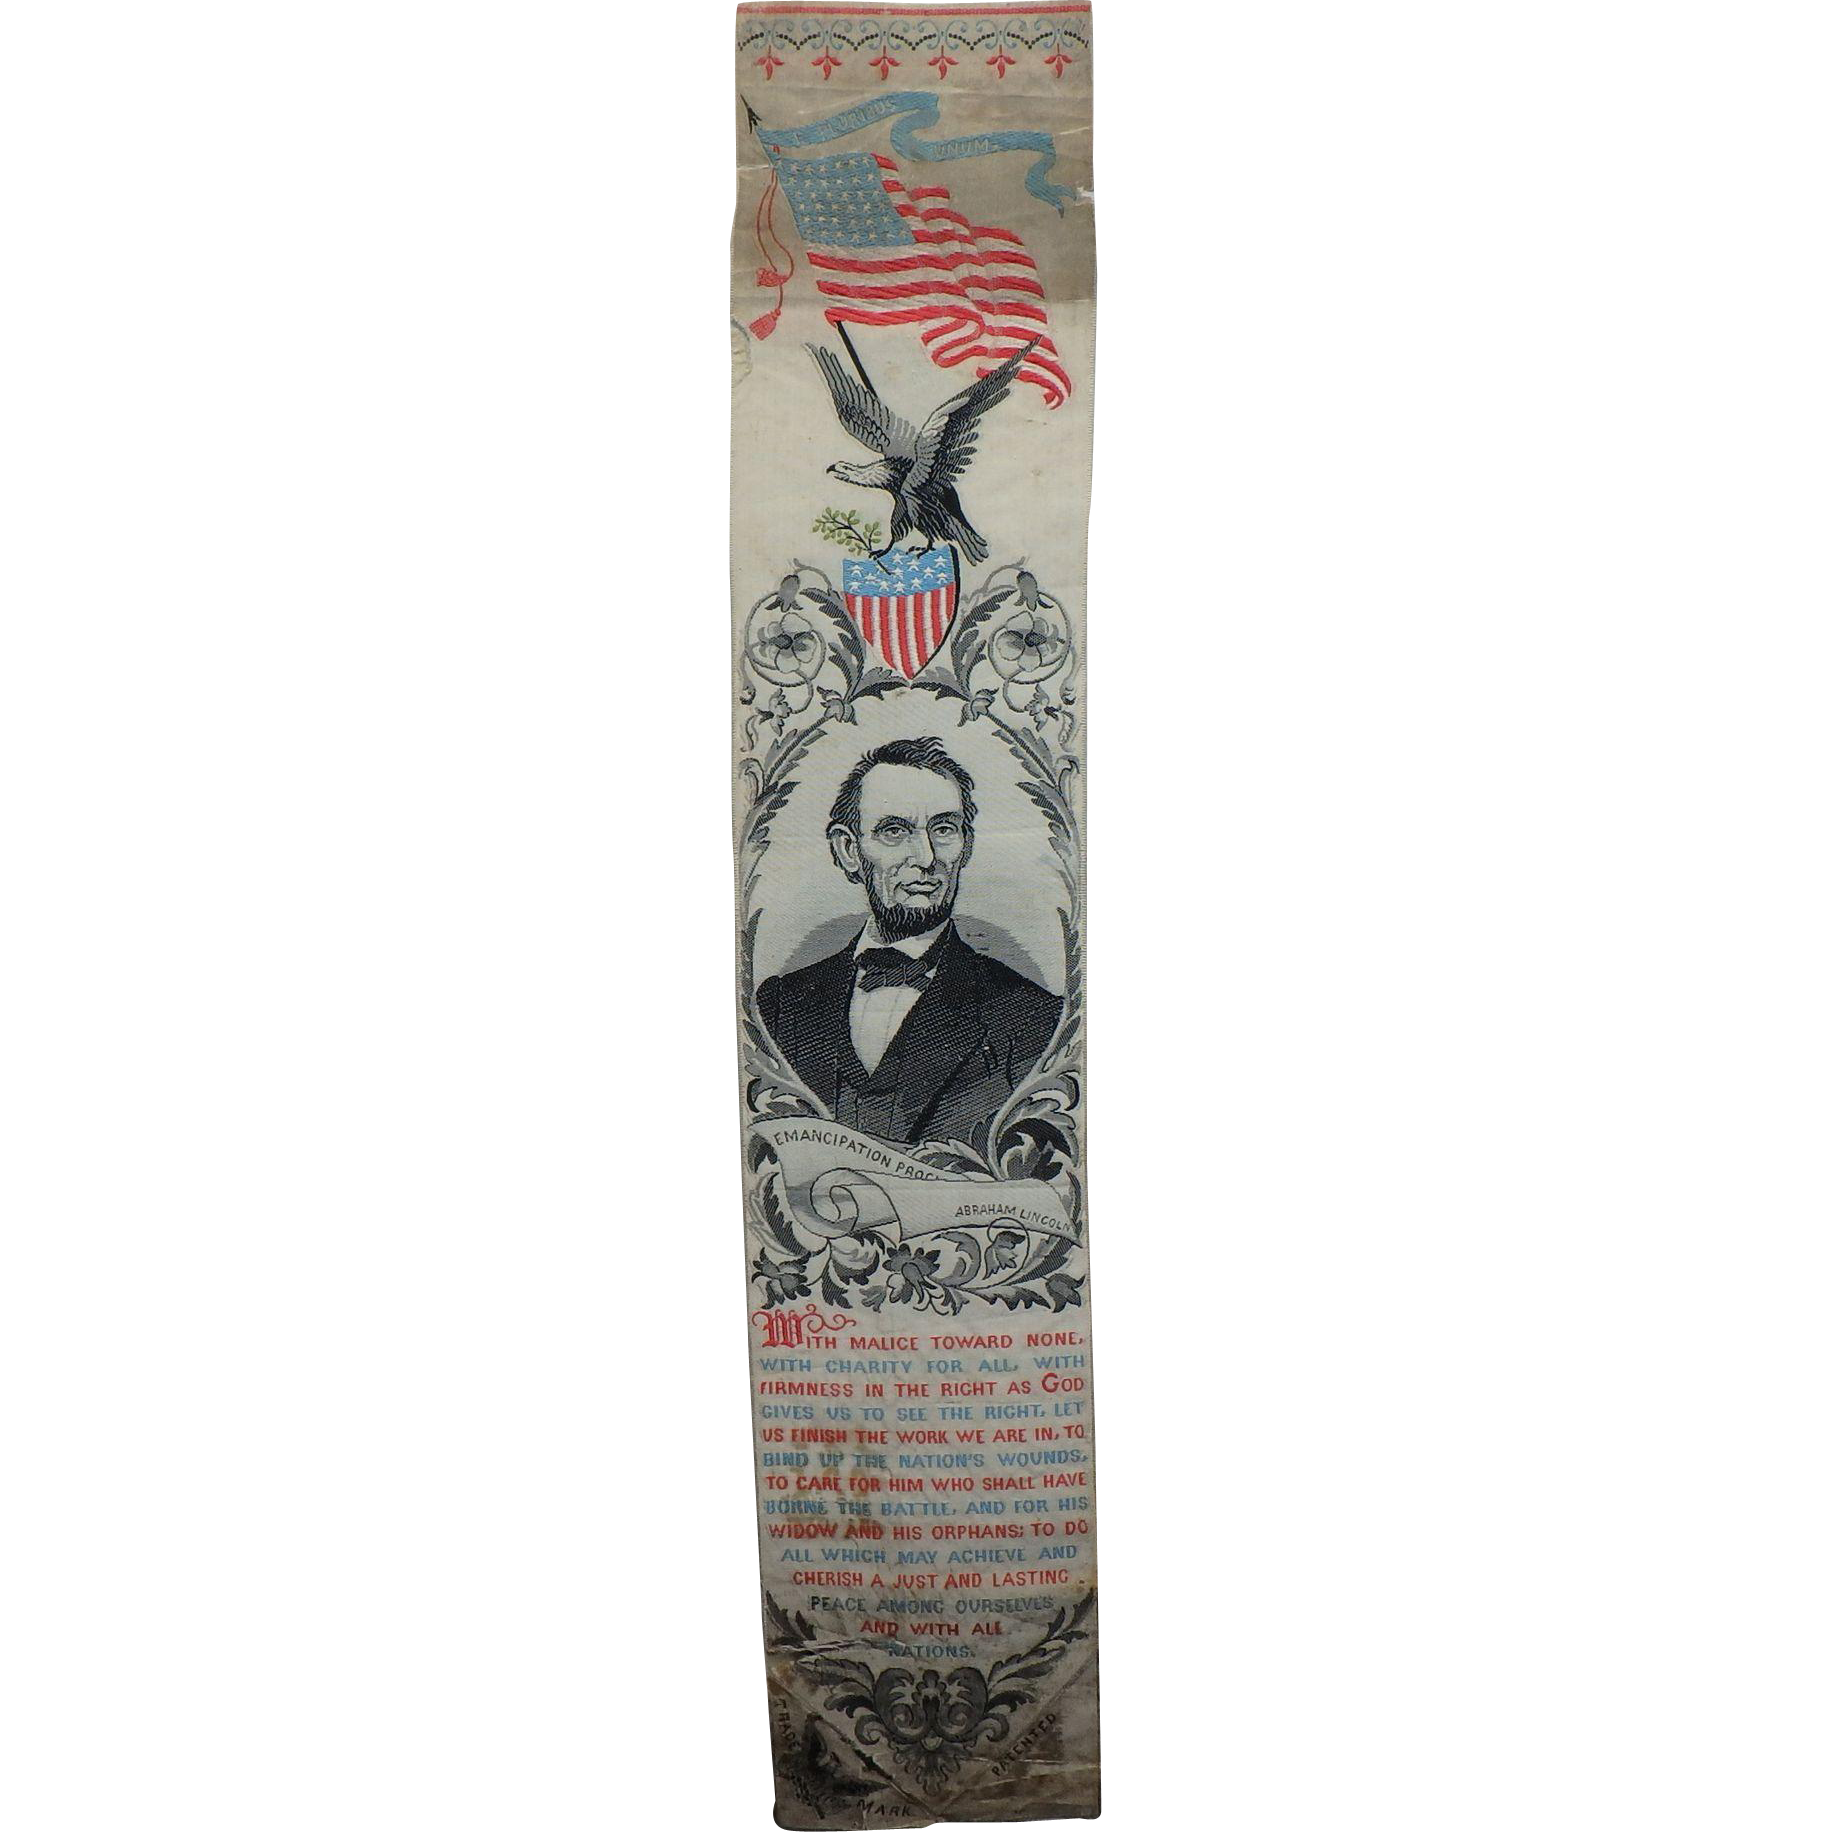 Abraham Lincoln Emancipation Proclamation Antique Silk Stevengraph Bookmark